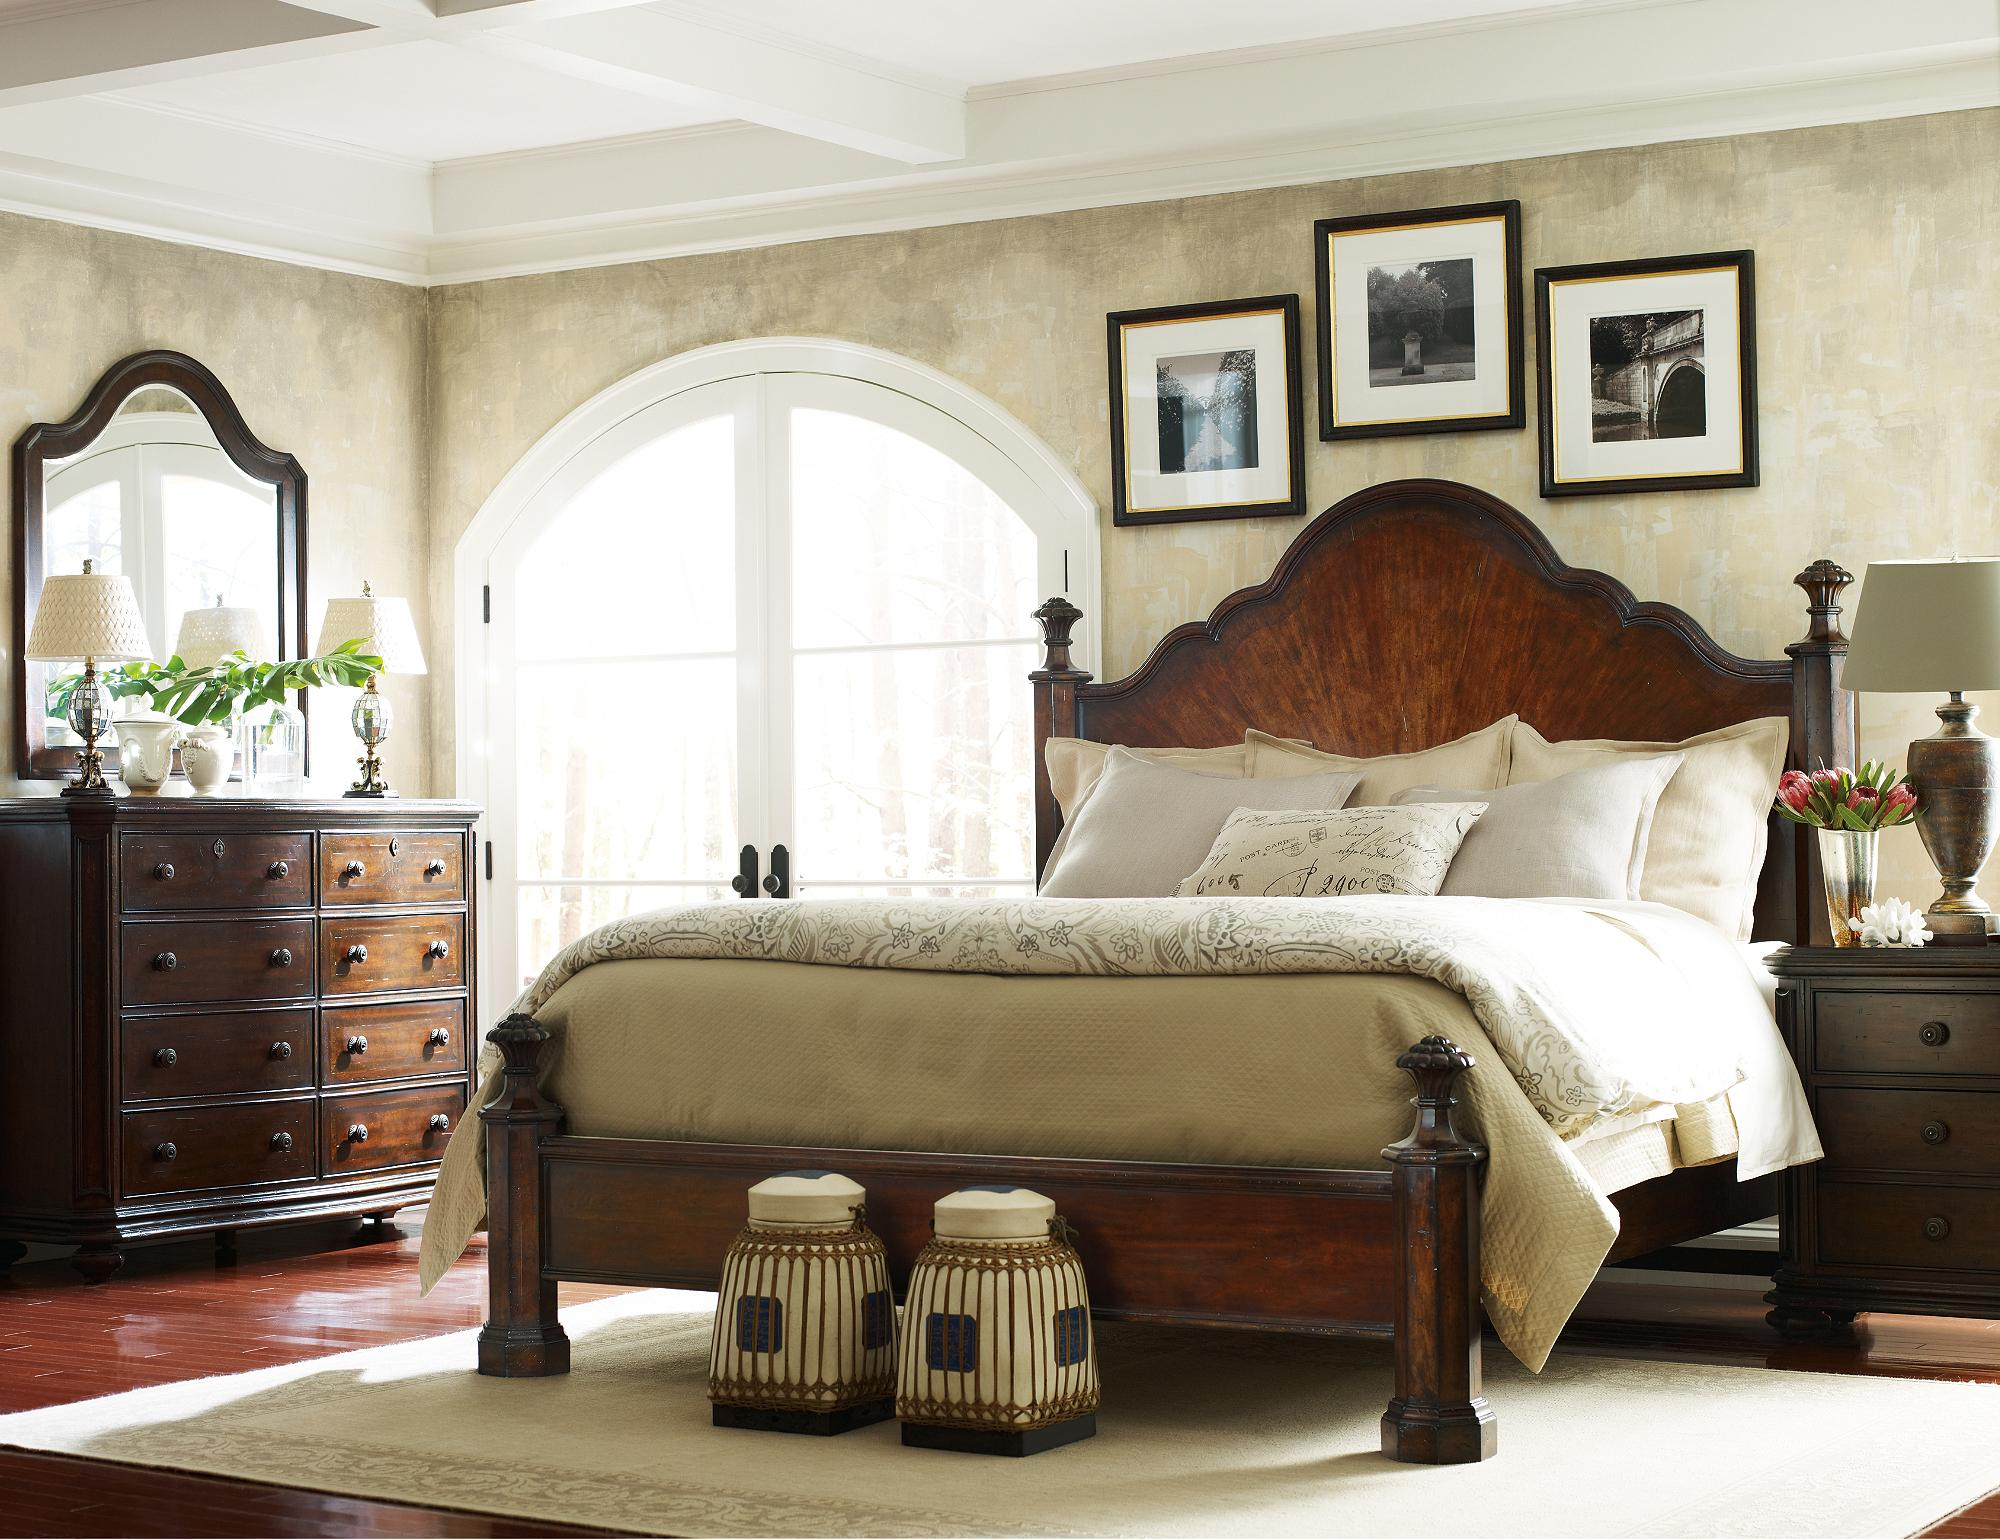 Stanley Furniture The Classic Portfolio Continental California King Bedroom Group - Item Number: 128-13 CK Bedroom Group 1